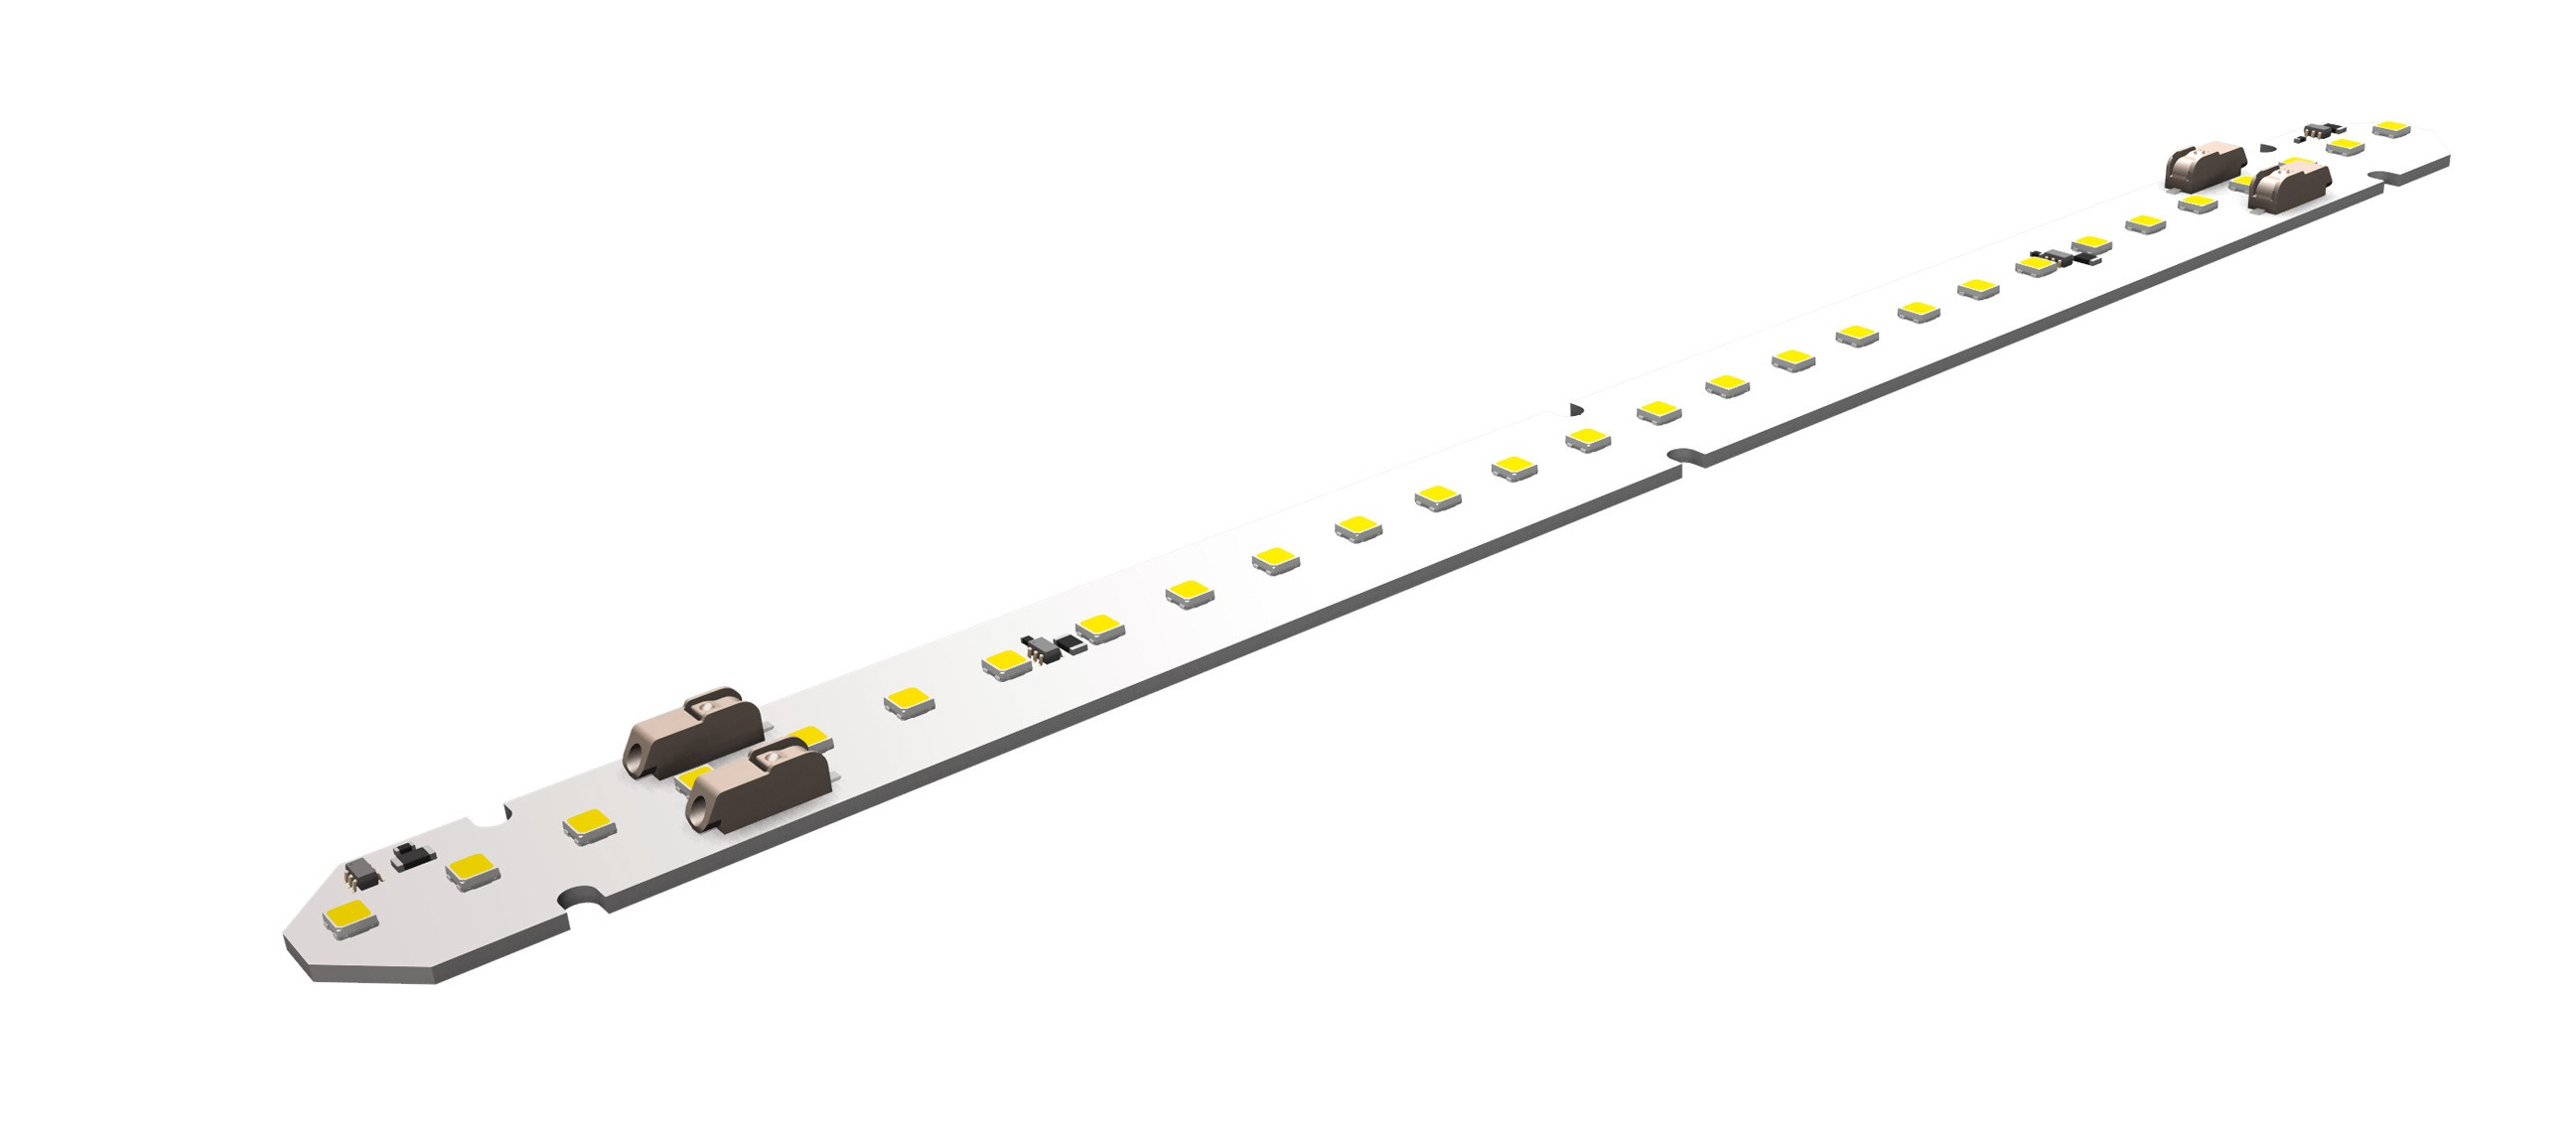 1_m.a.l. led-iX linearis 1x28 ML, CREE LED Streifen, 13.4W, kalt/ neutral/ warmweiß